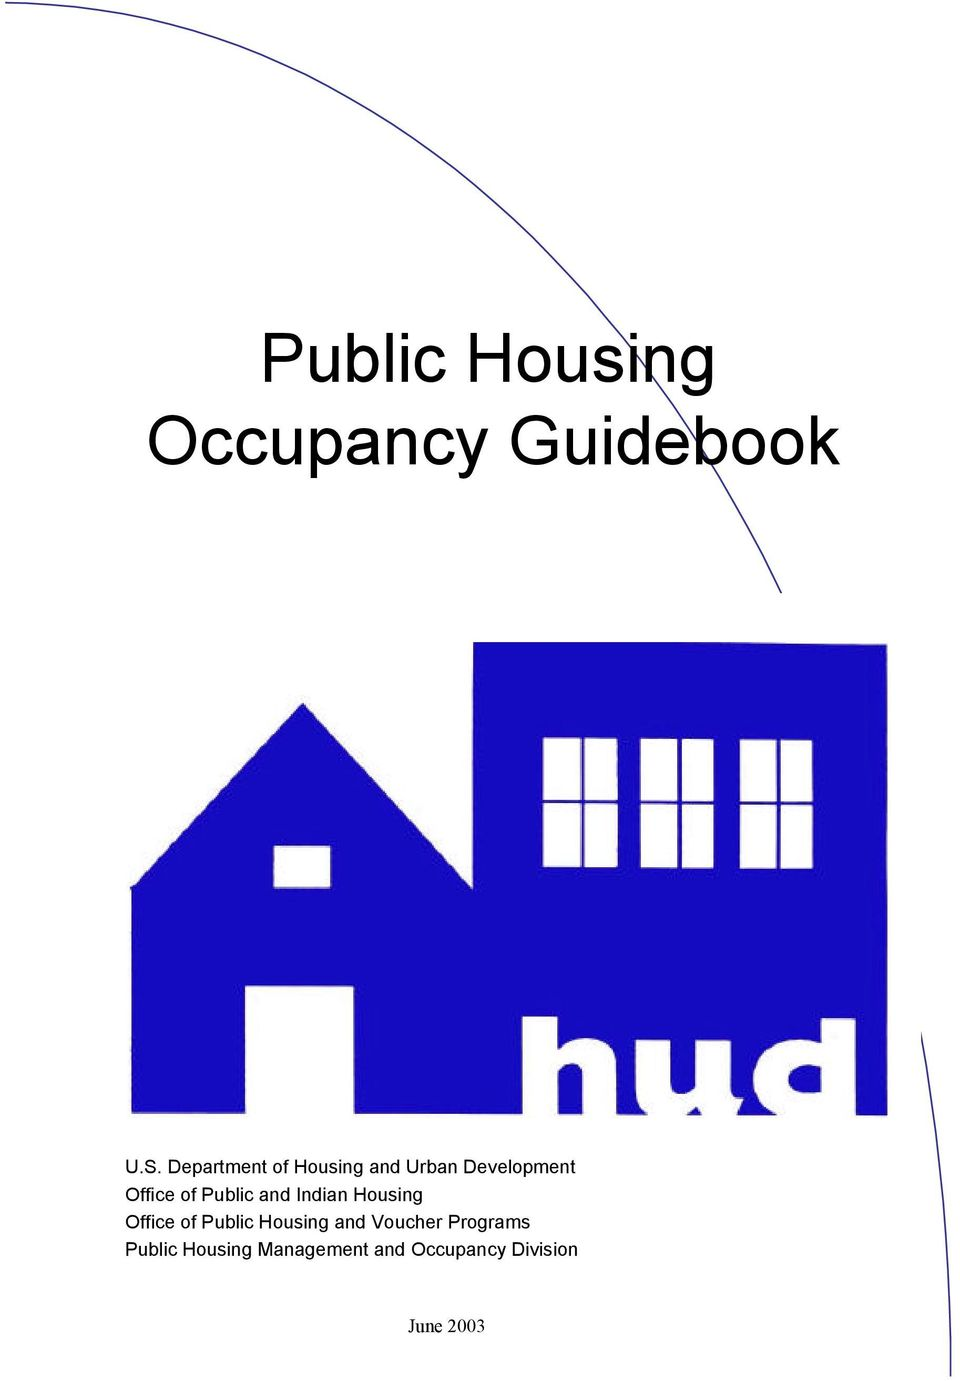 Public and Indian Housing Office of Public Housing and